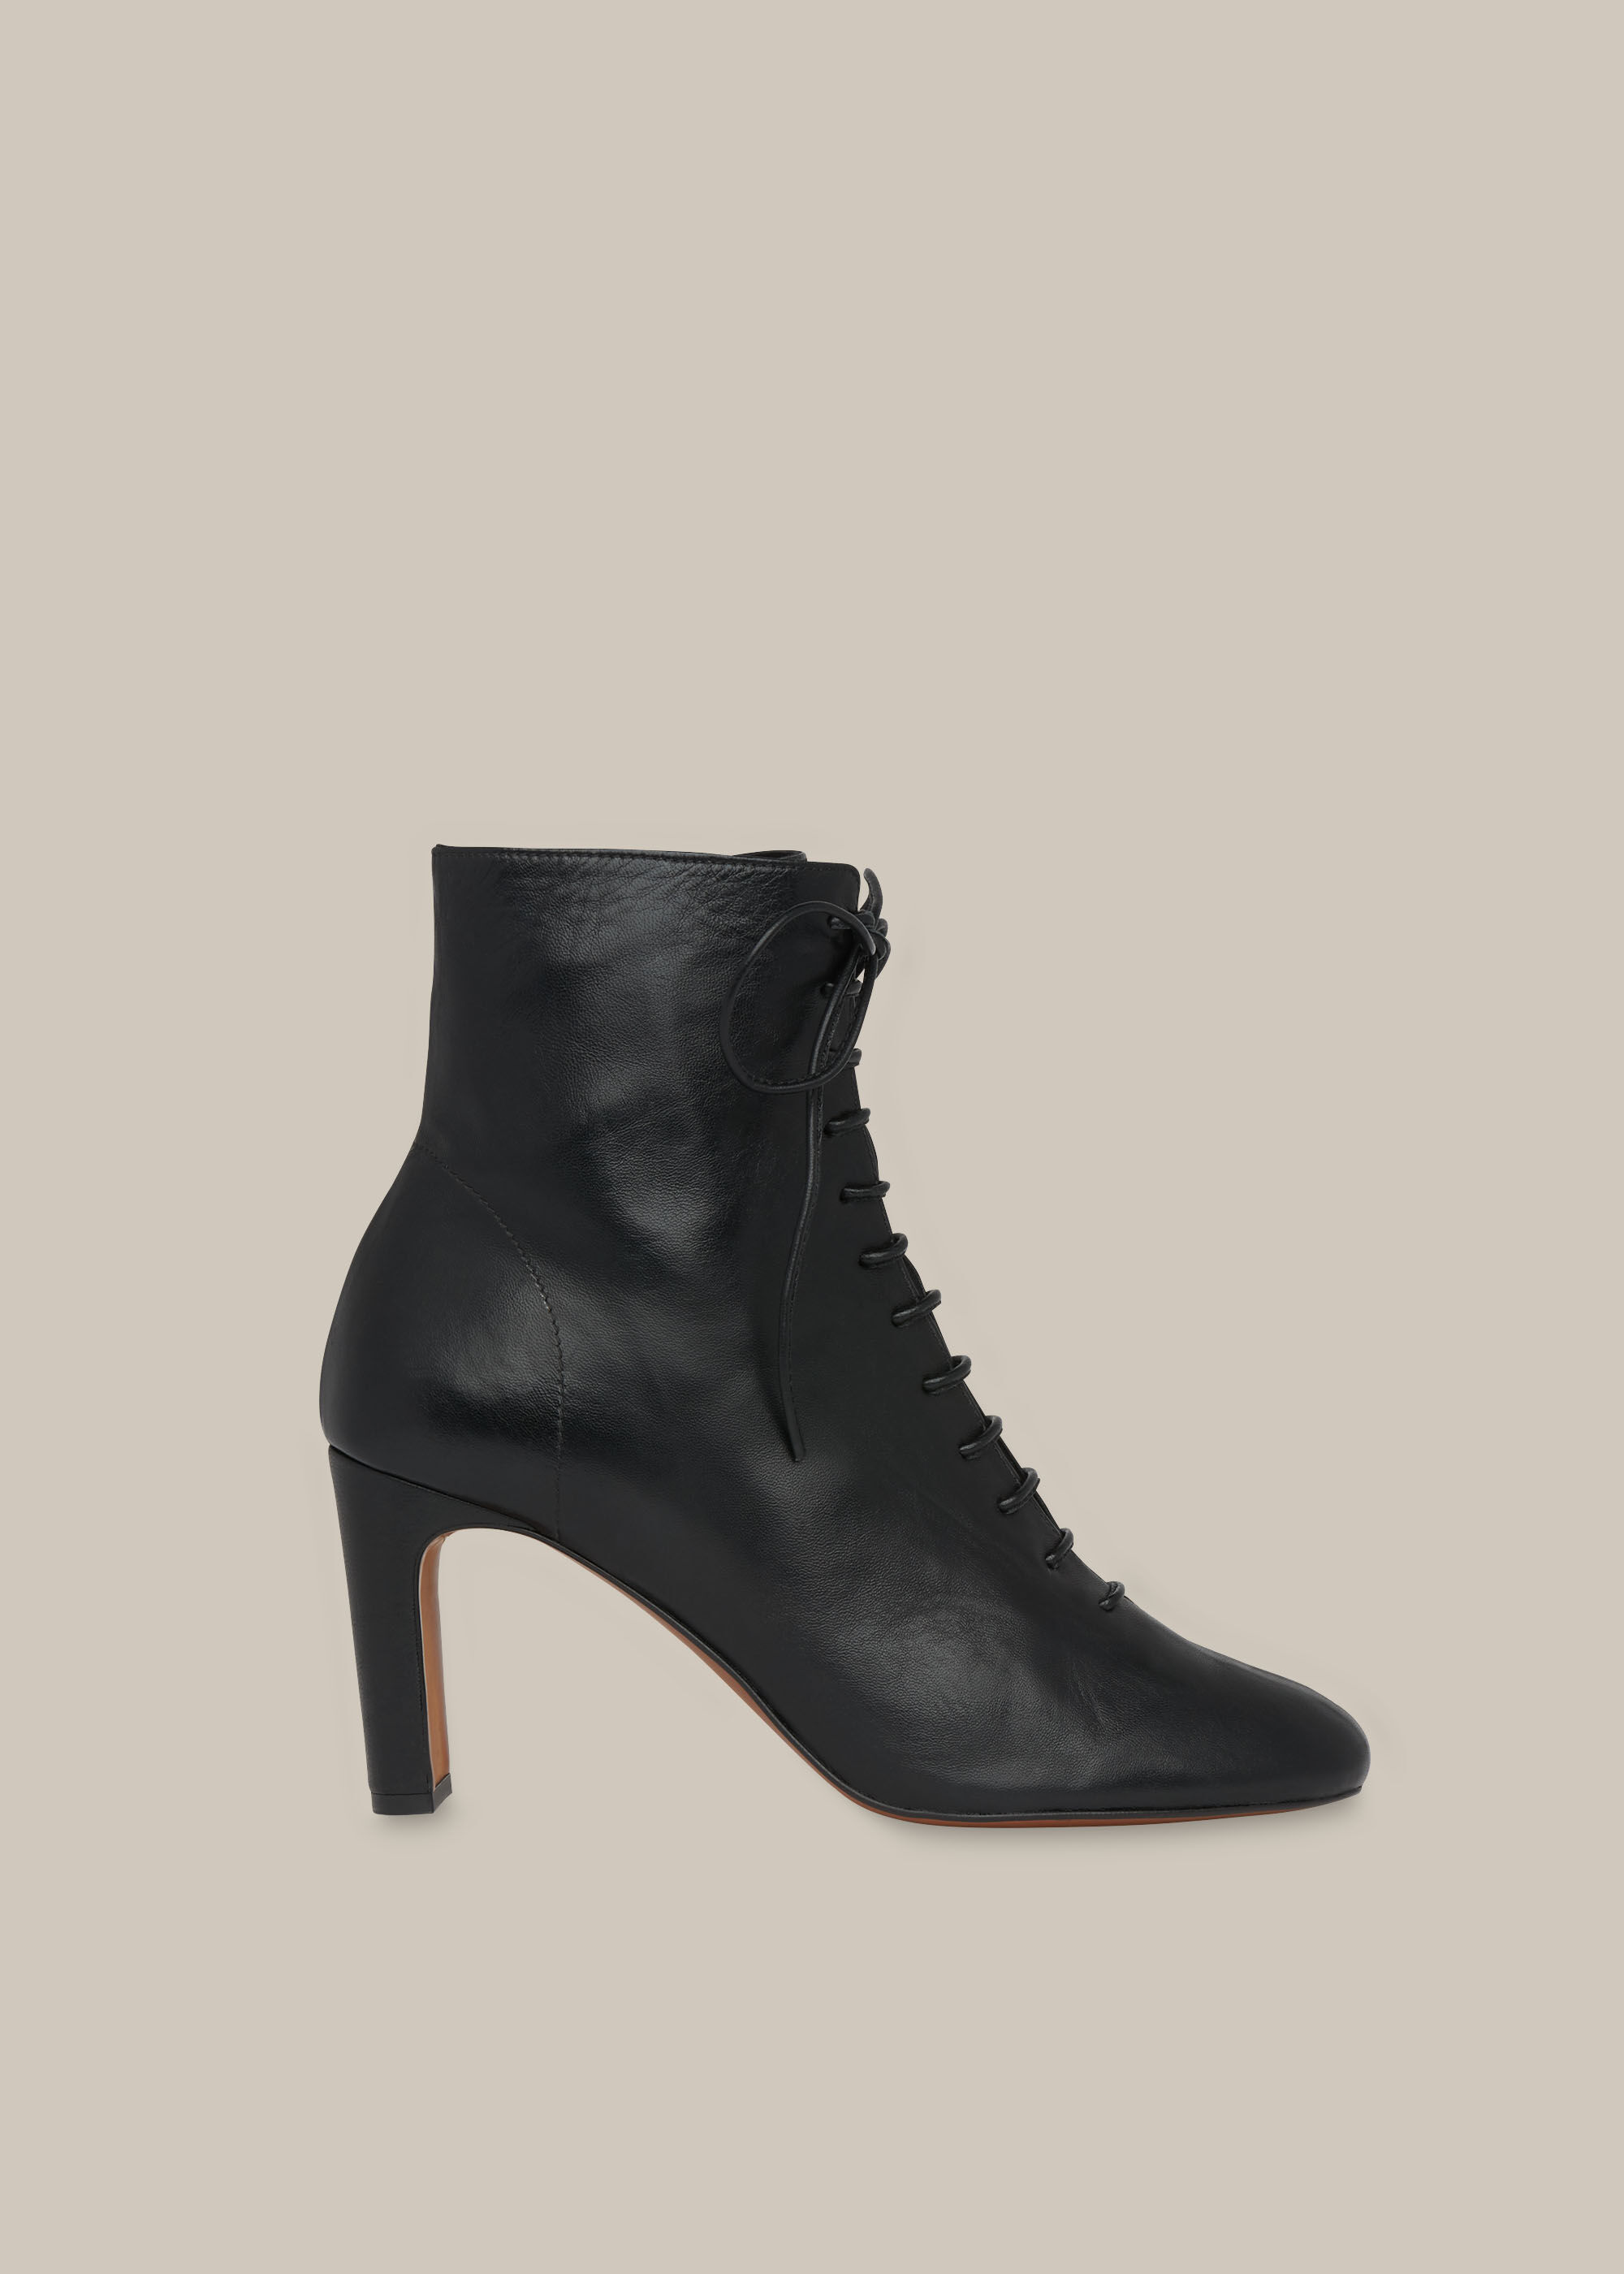 Dahlia Lace Up Boot | WHISTLES | Whistles